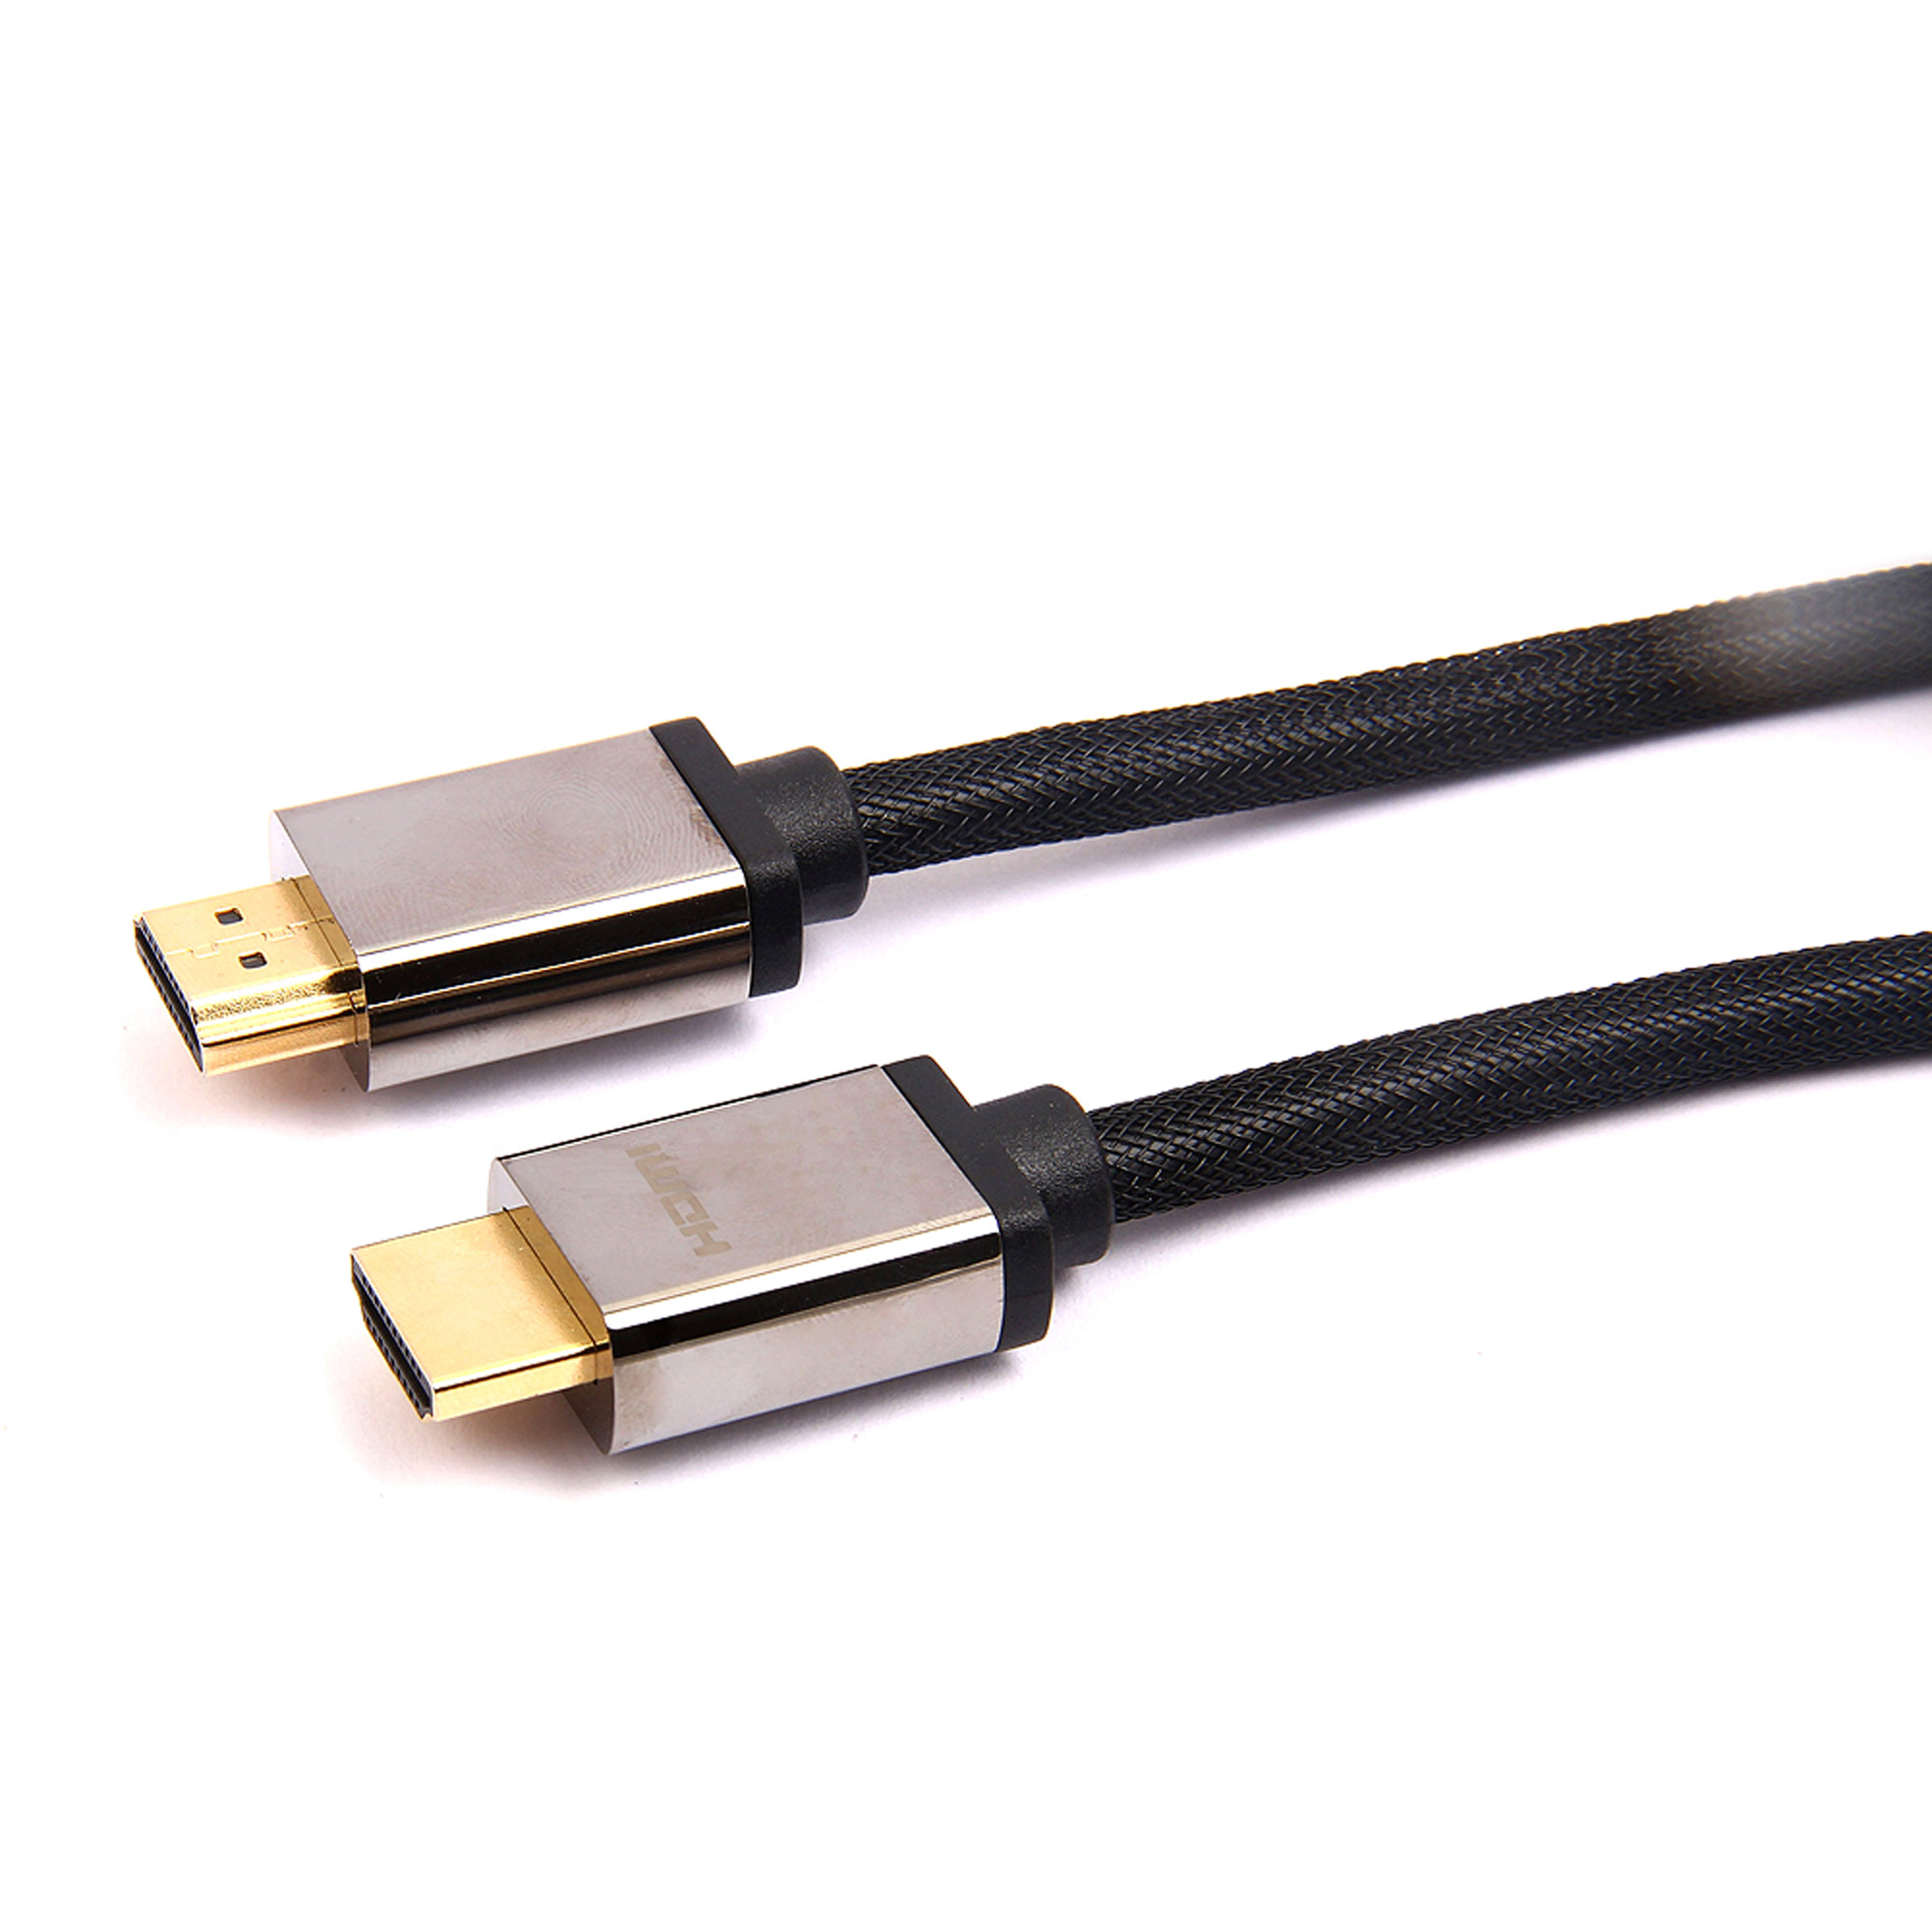 [QNCB_7524]  KY_8050] Hdmi 3D Cable 1 4 Wiring Diagram Download Diagram | Black Web Hdmi Cable Wire Diagram |  | Plan Tran Nerve Bachi Ivoro Emba Mohammedshrine Librar Wiring 101